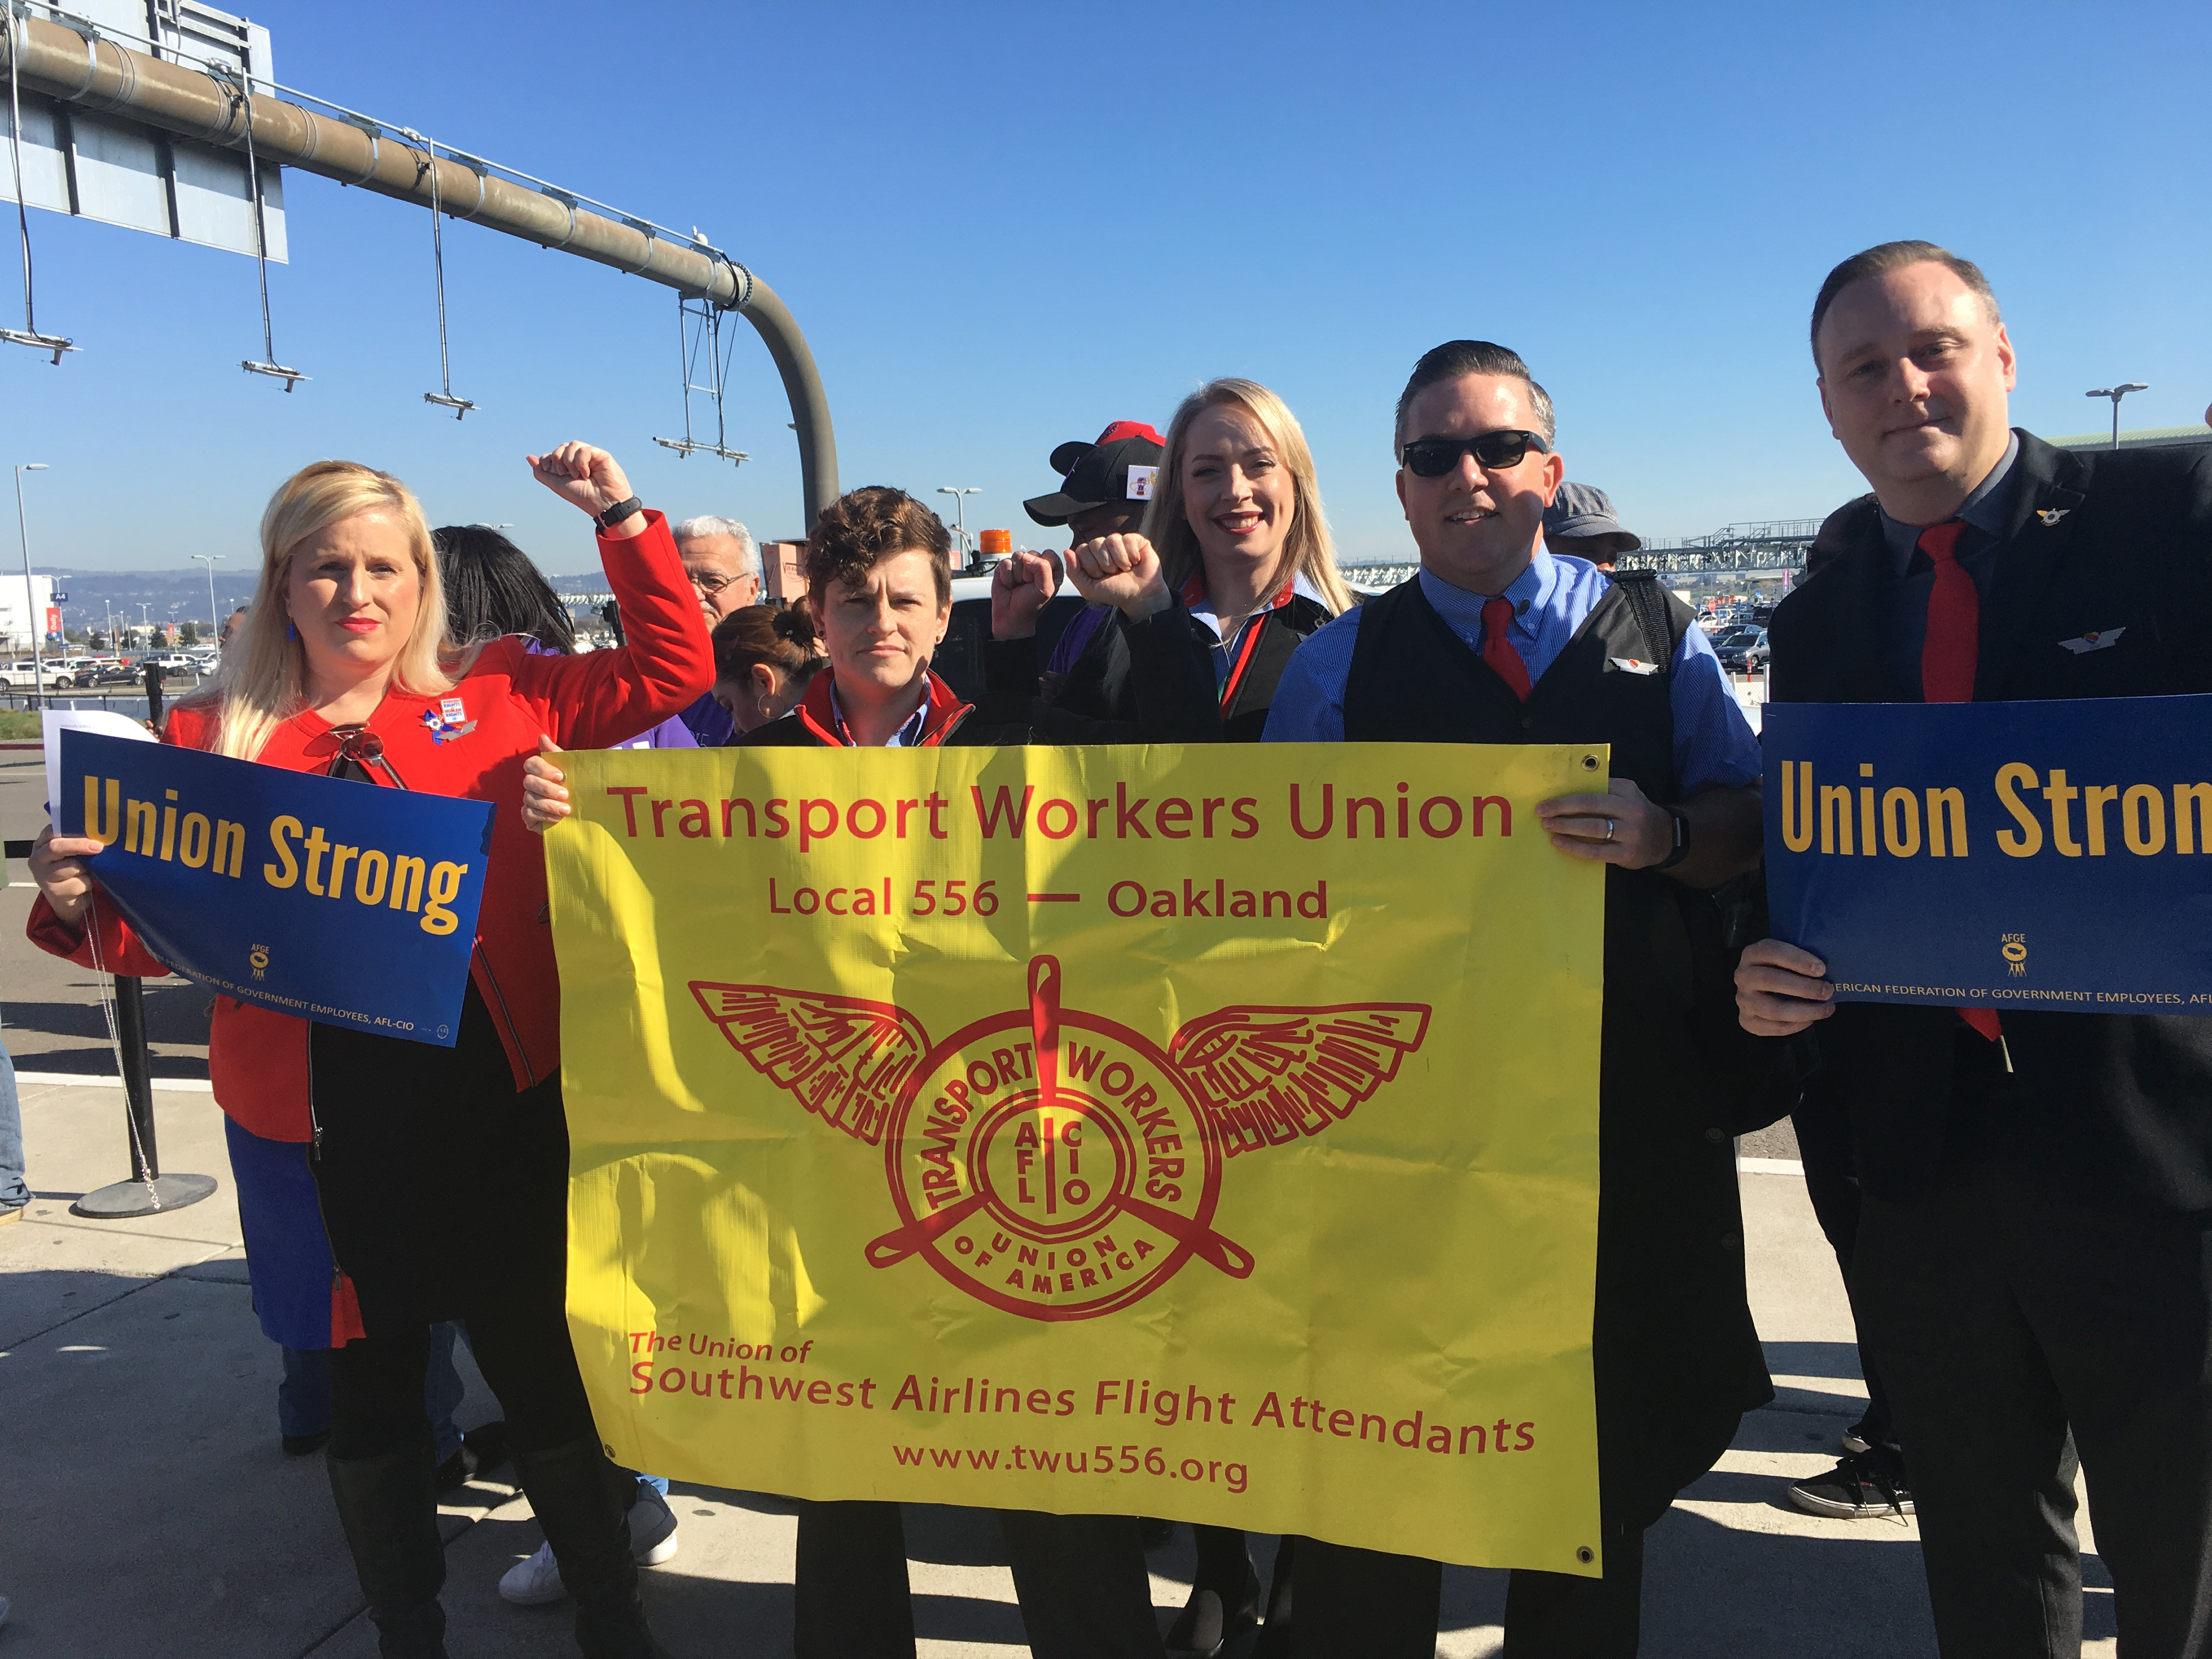 AFGE Workers With Airline Workers & Labor Protest At Oakland